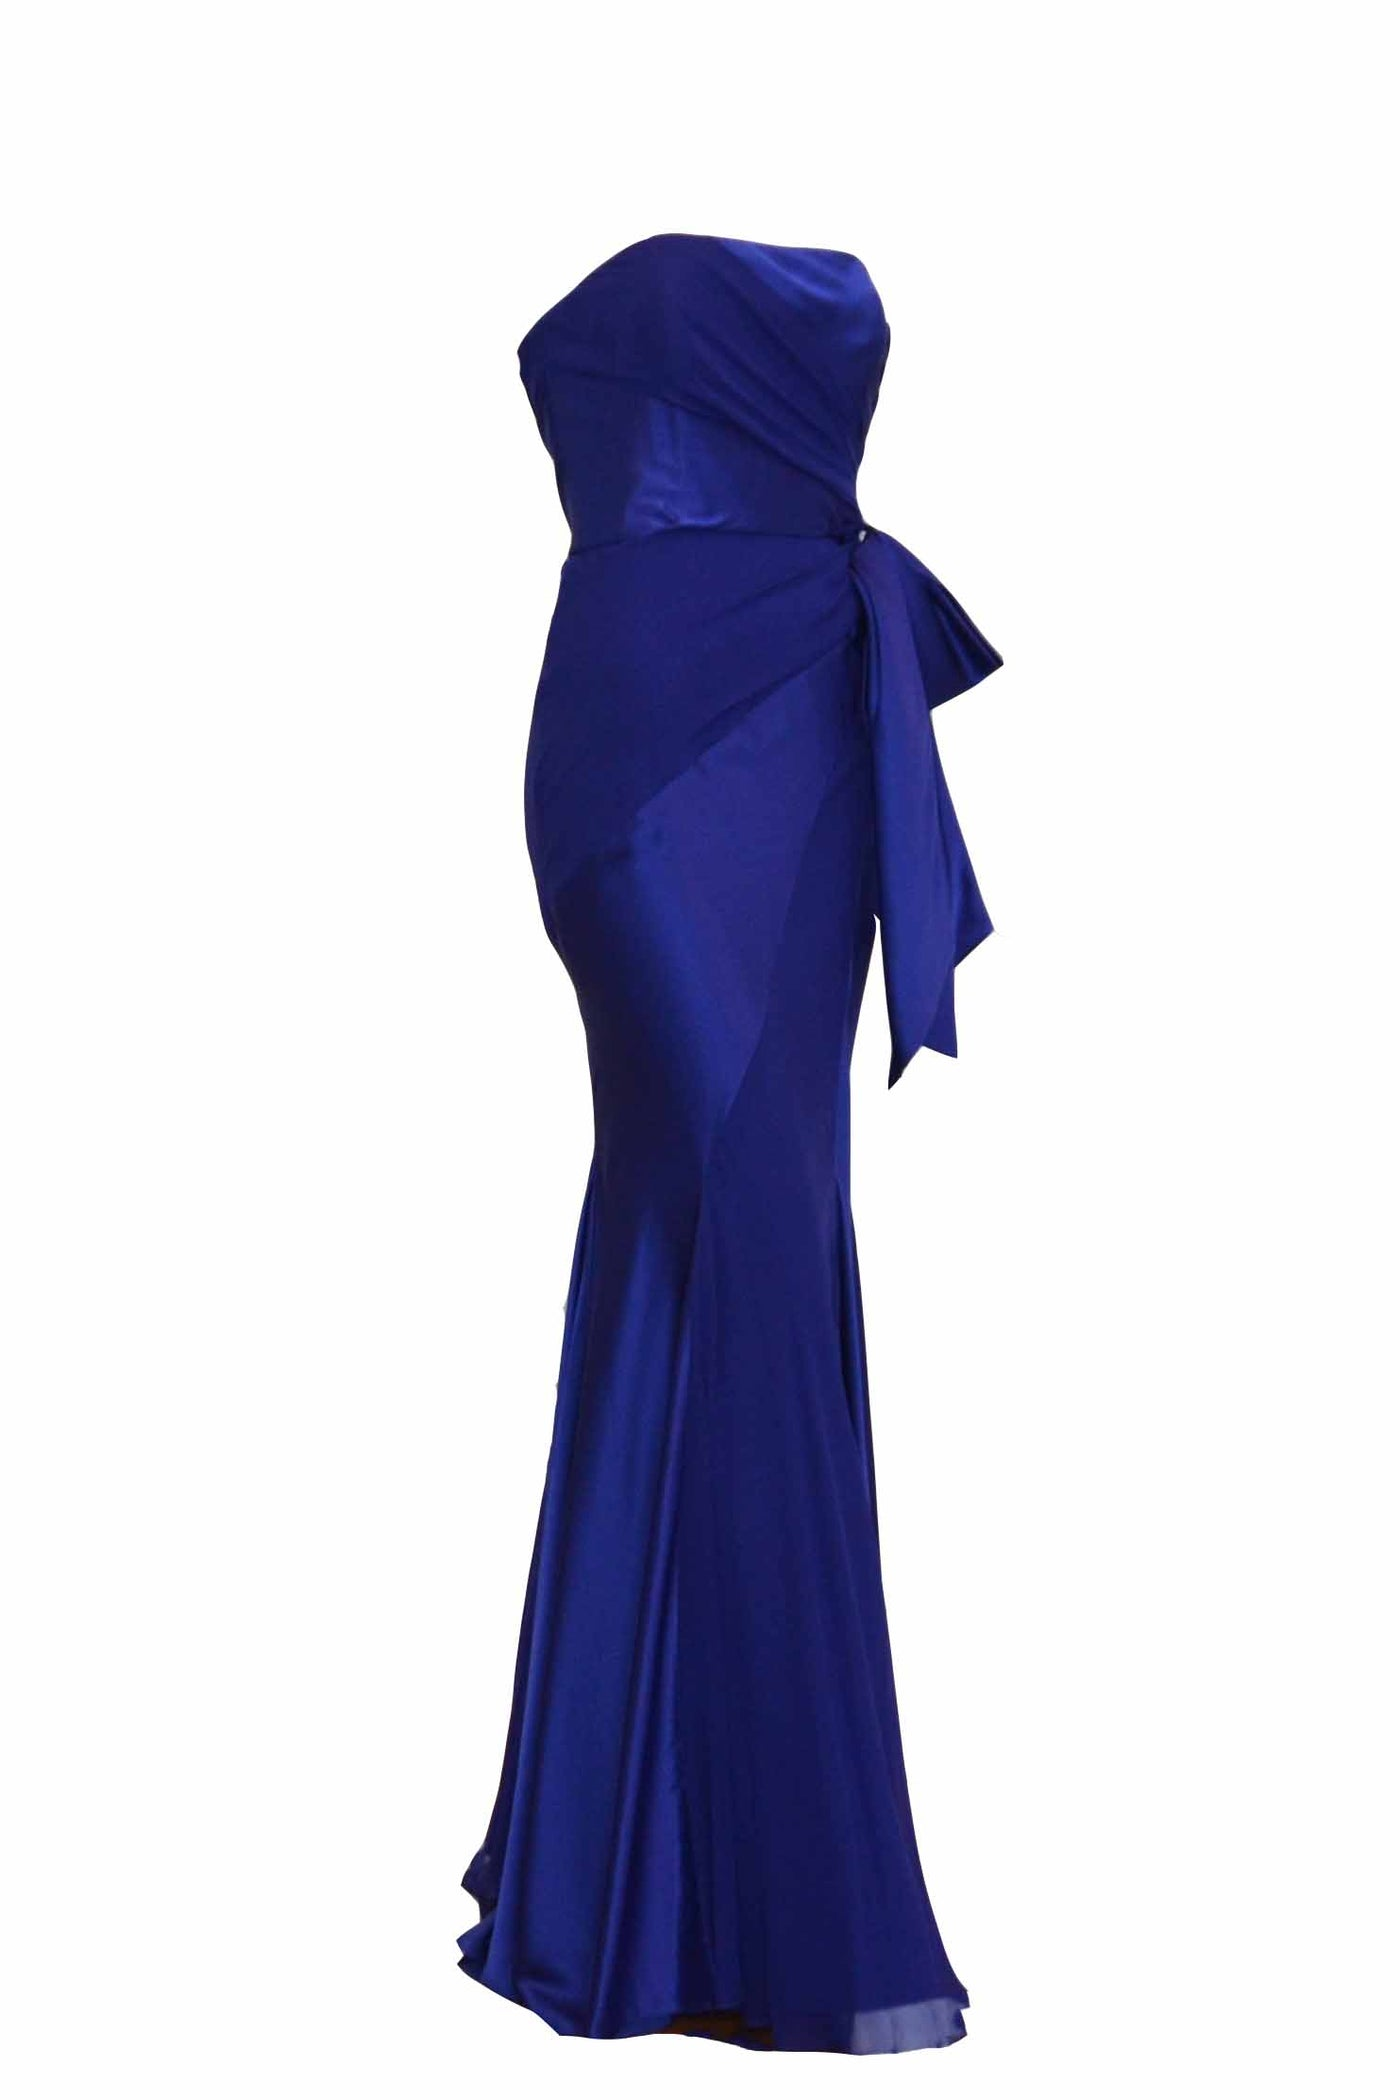 Sale: Melinda Eng - Blue Satin with Bow Dress